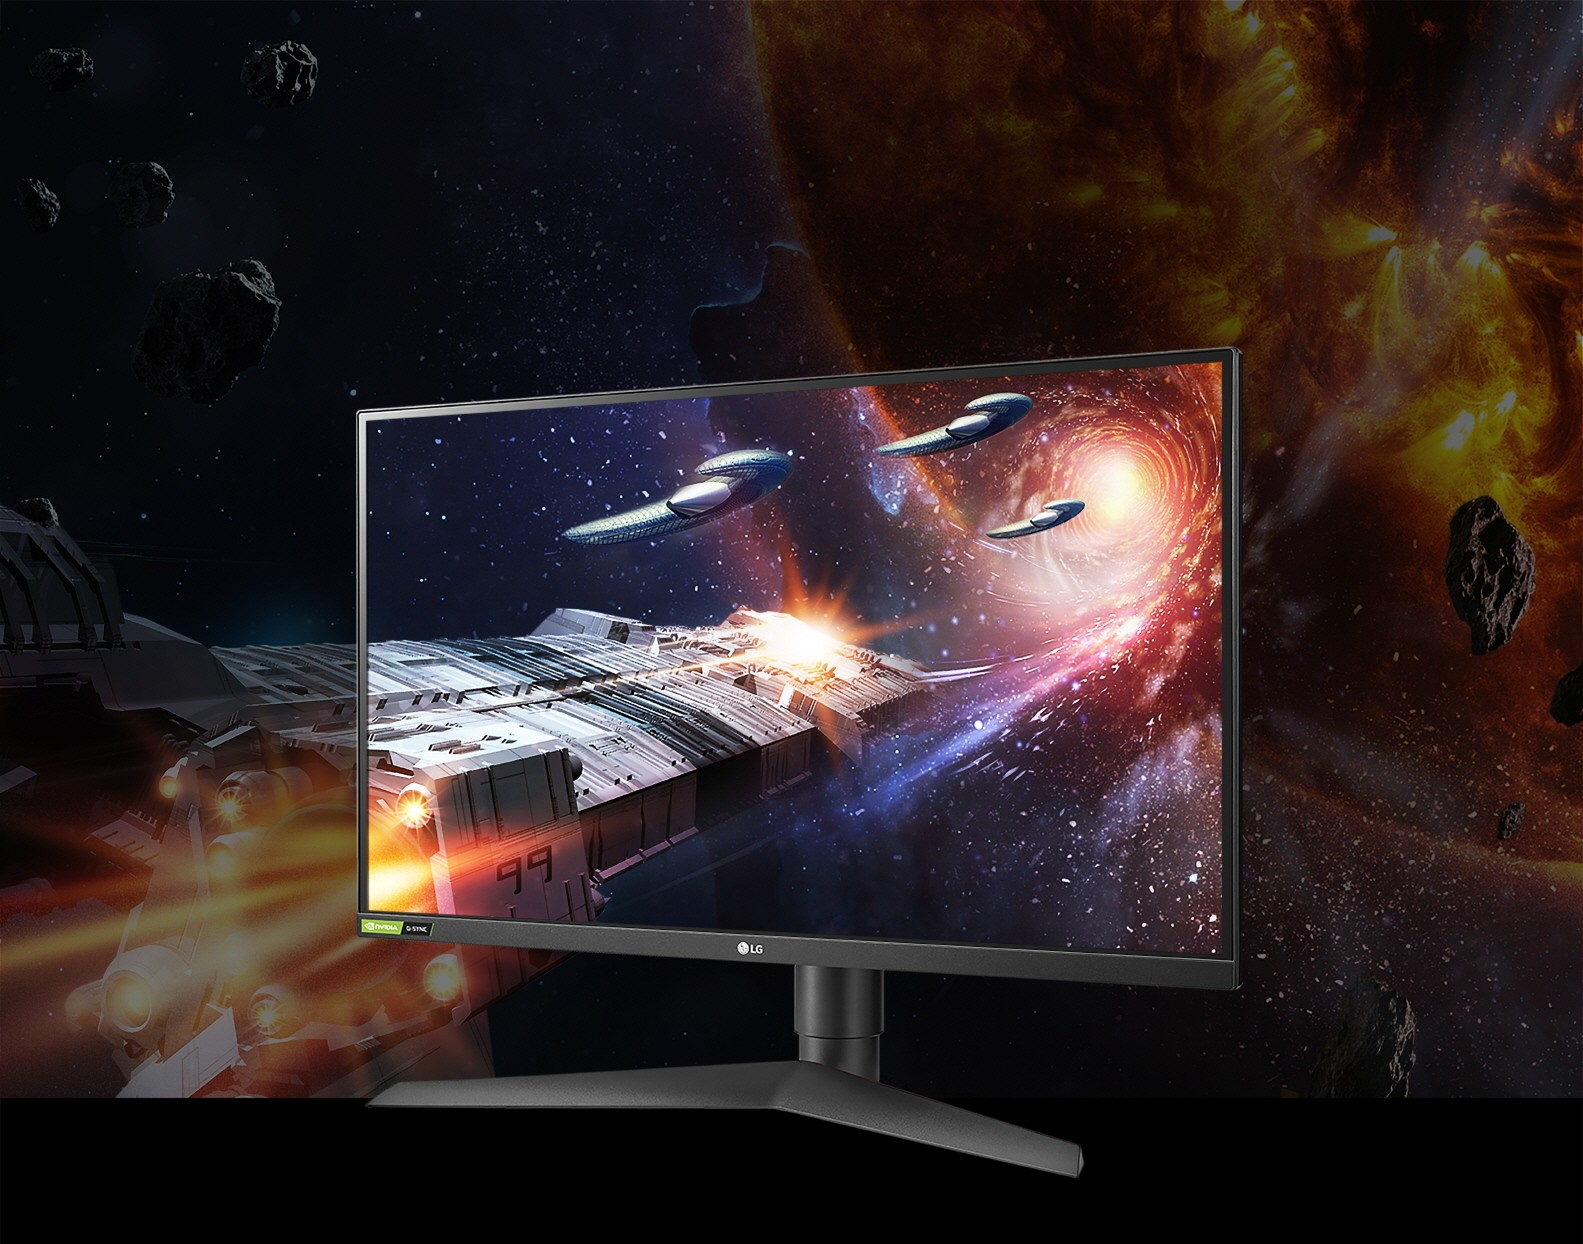 A right-side view of the LG UltraGear Monitor model 27GN750 displaying life-like images of space with rich colors in a dark setting